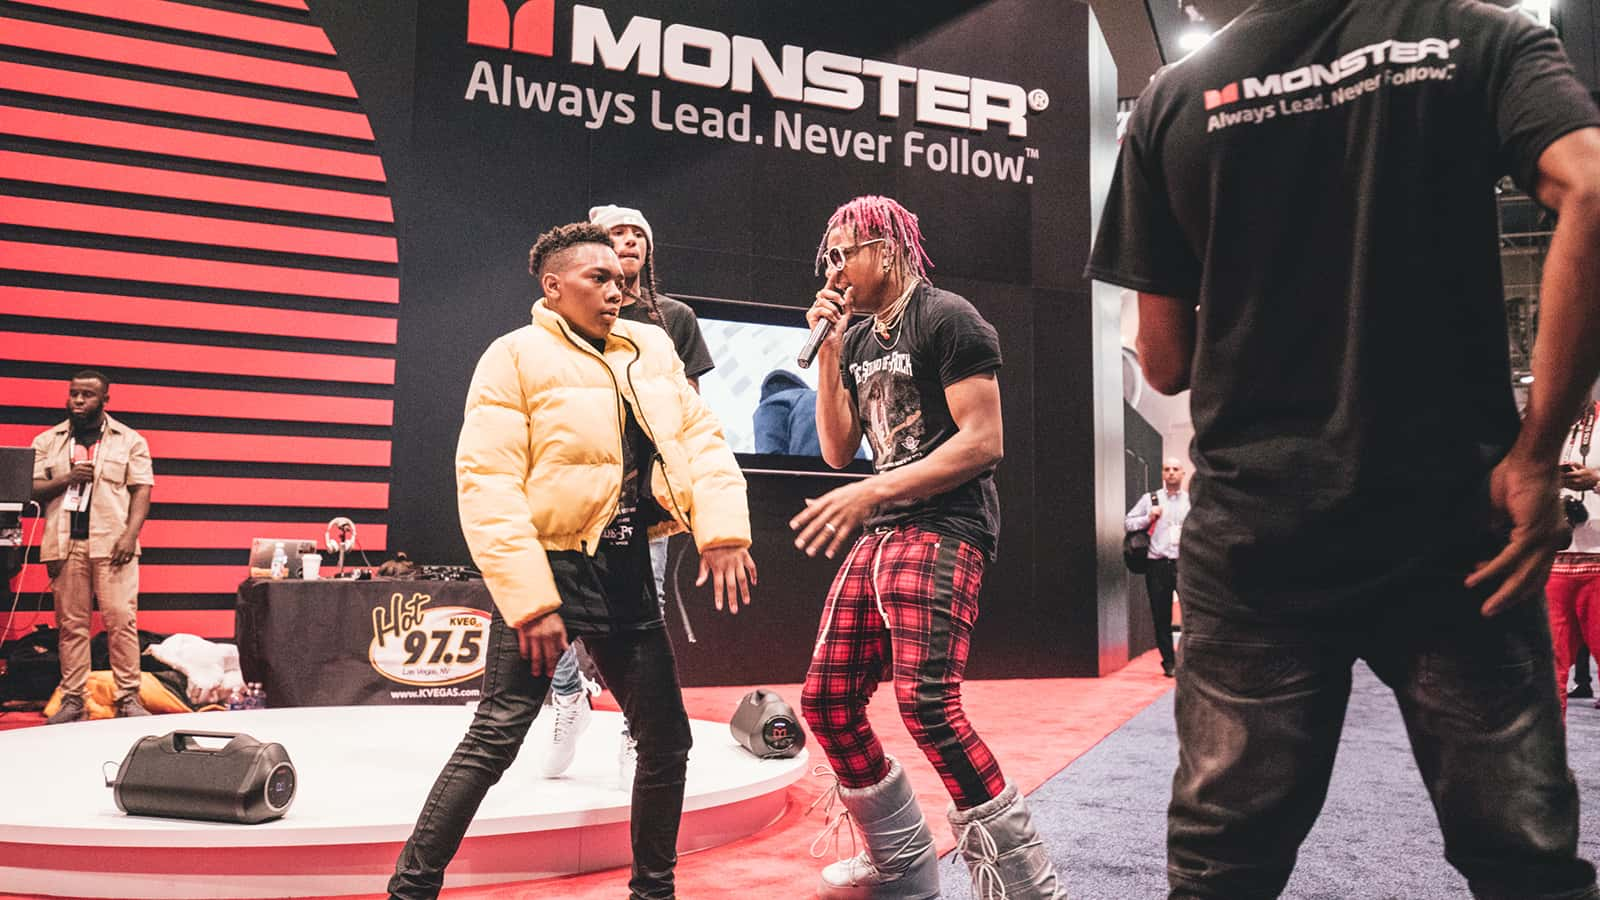 Entertaining attendees at the Monster CES 2018 experience.